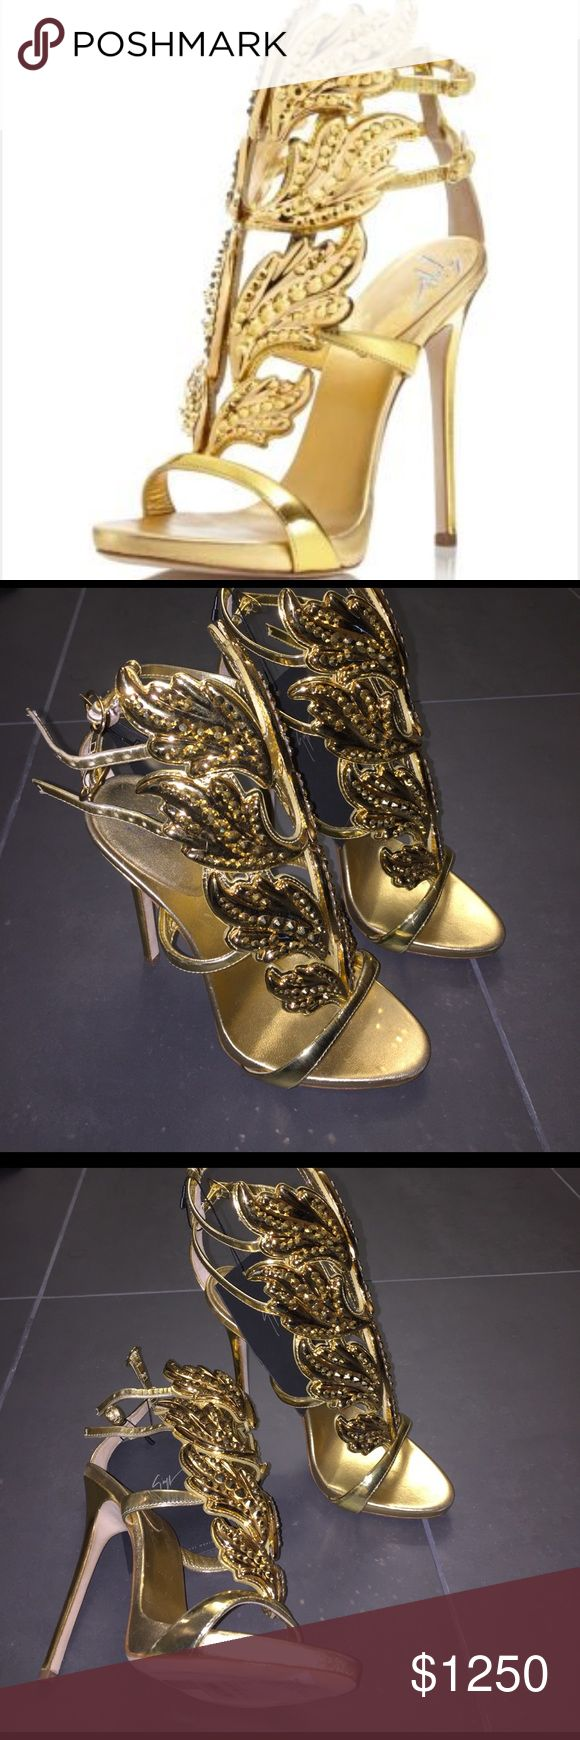 Giuseppe Zanottii Coline Cruel Embellished Wing 💫 Brand new!!! Beautiful gold Embellished iconic Giuseppe heels. $2125 retail. In stores now. No box or dustbag. Giuseppe Zanotti Shoes Heels